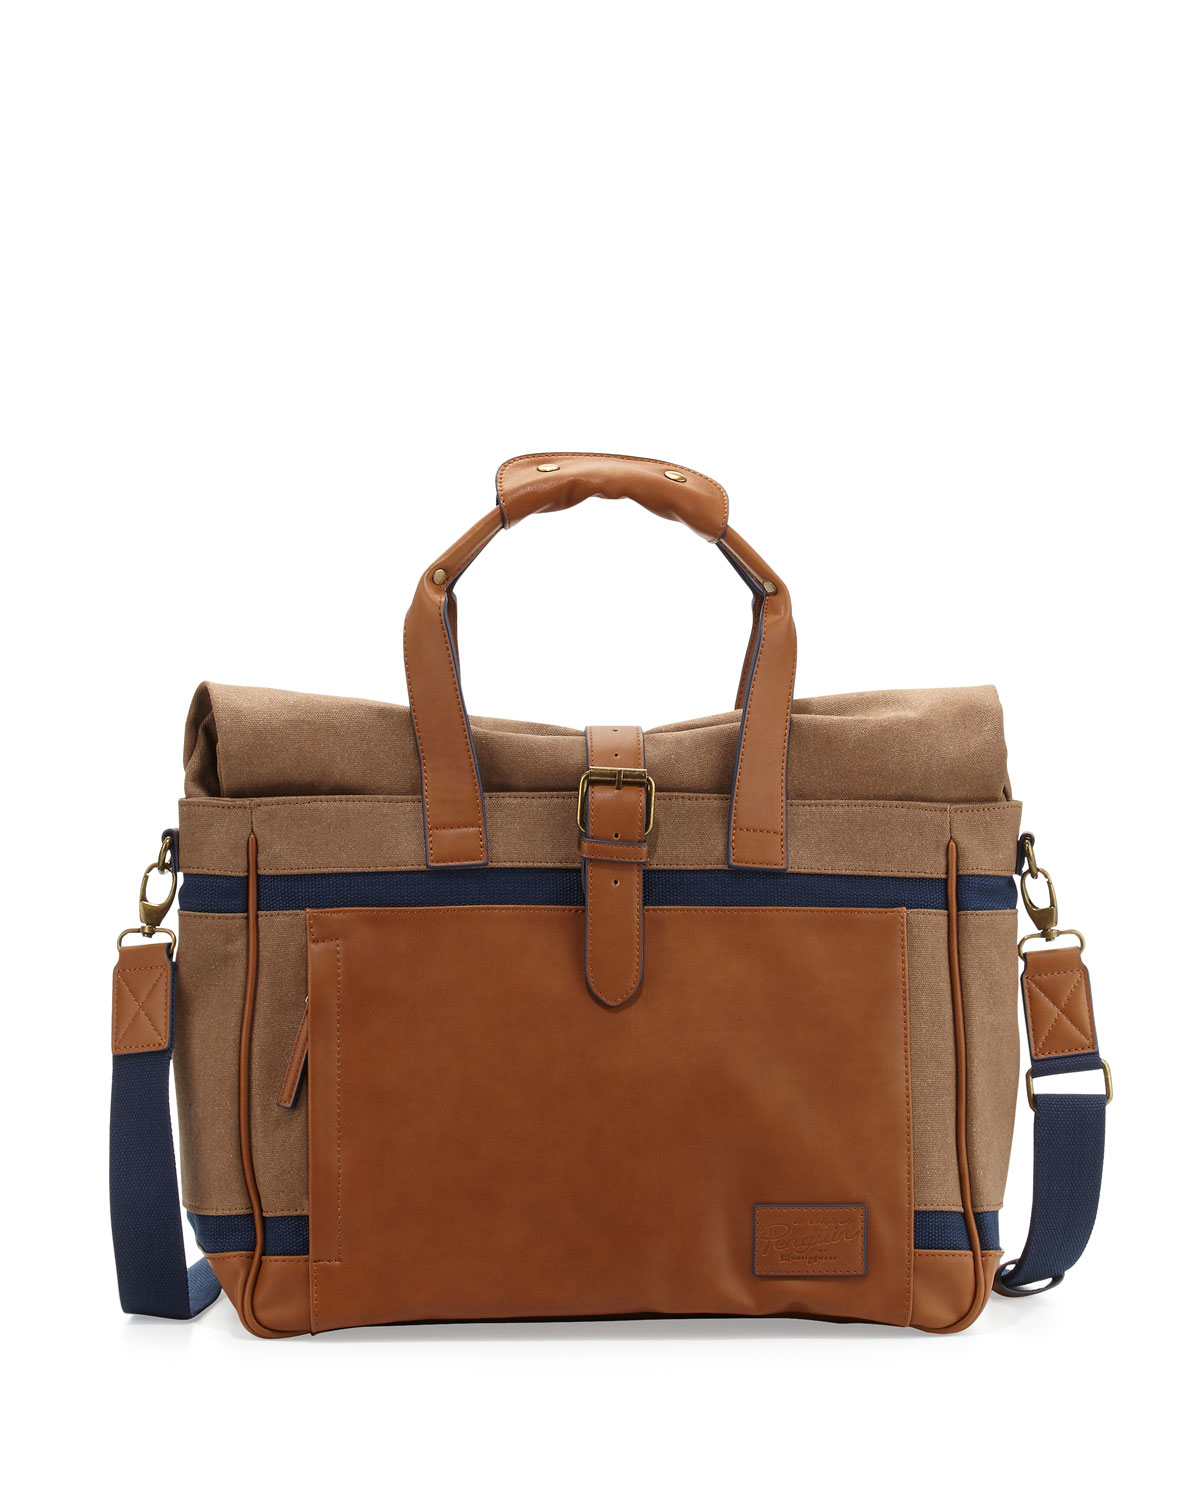 Inspired by military duffel bags, this backpack boasts a waxed canvas exterior and interior divider, Horween leather straps and shoulder pads, a laptop sleeve, zippered iPad pouch, open-top notebook, phone and pen pockets, and utility straps.